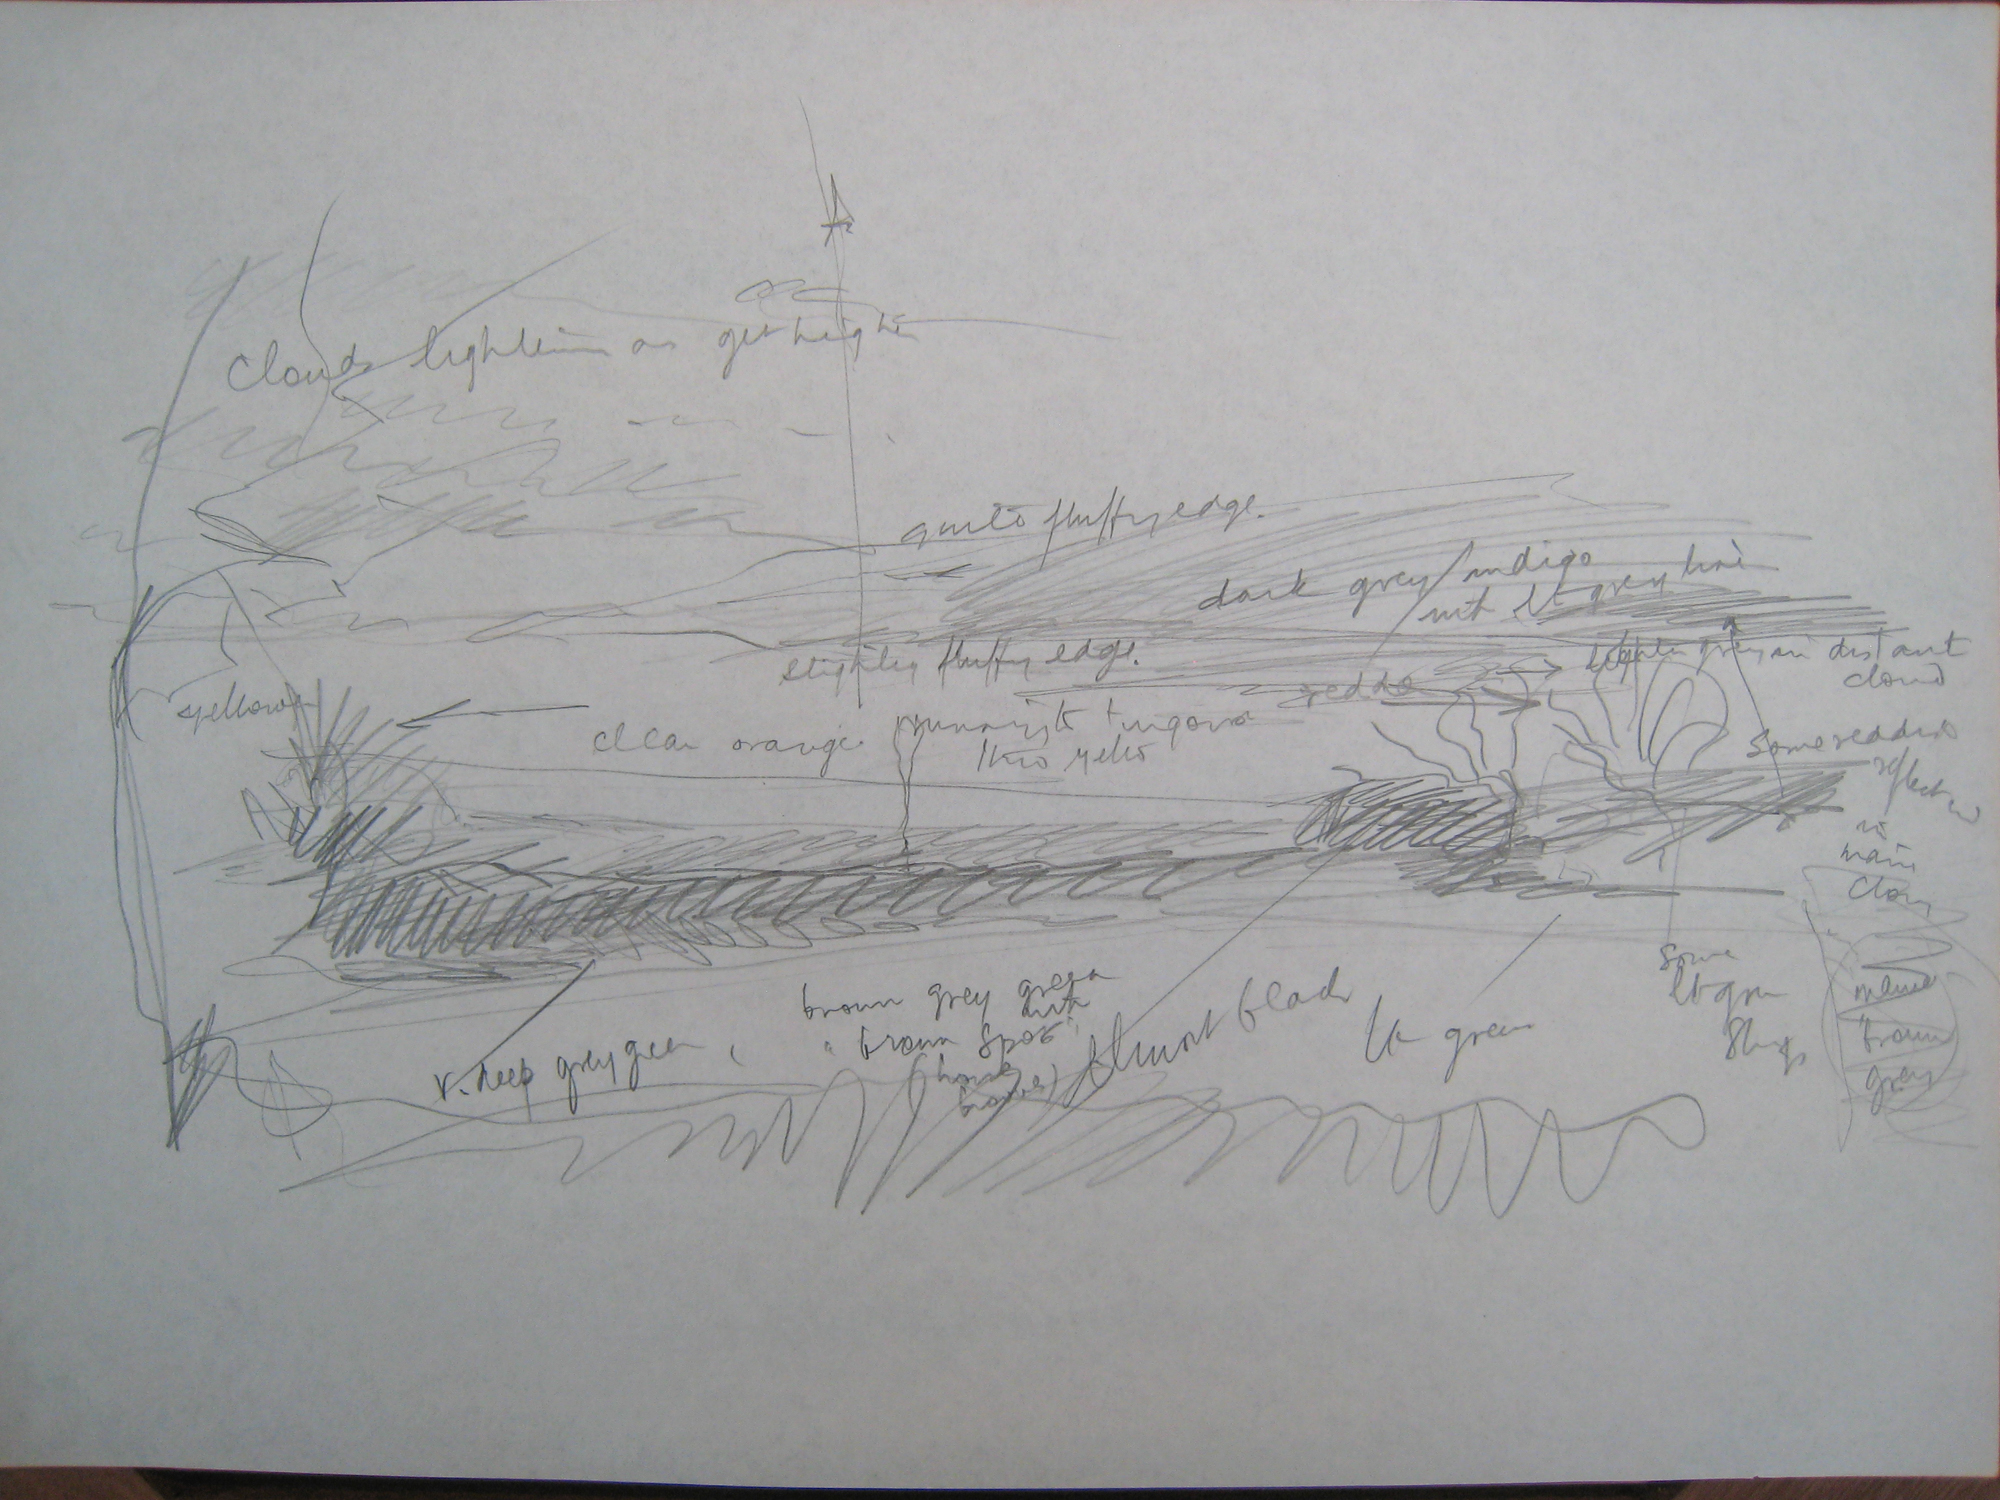 Germansweek landscapes, annotated sketch